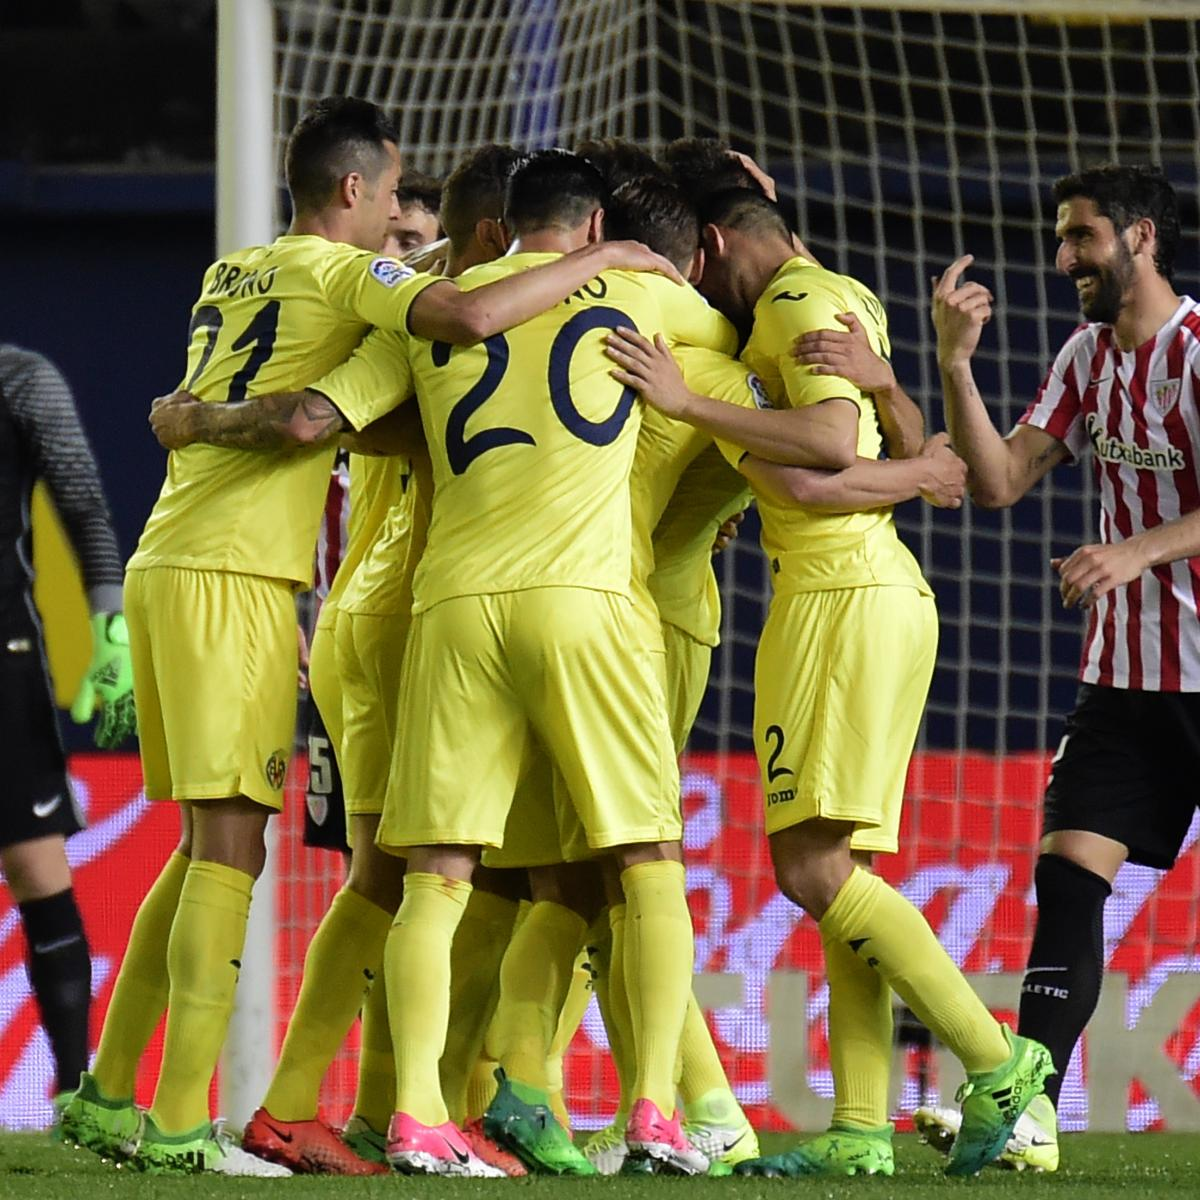 La liga table 2017 week 31 updated standings following - Spanish second division league table ...